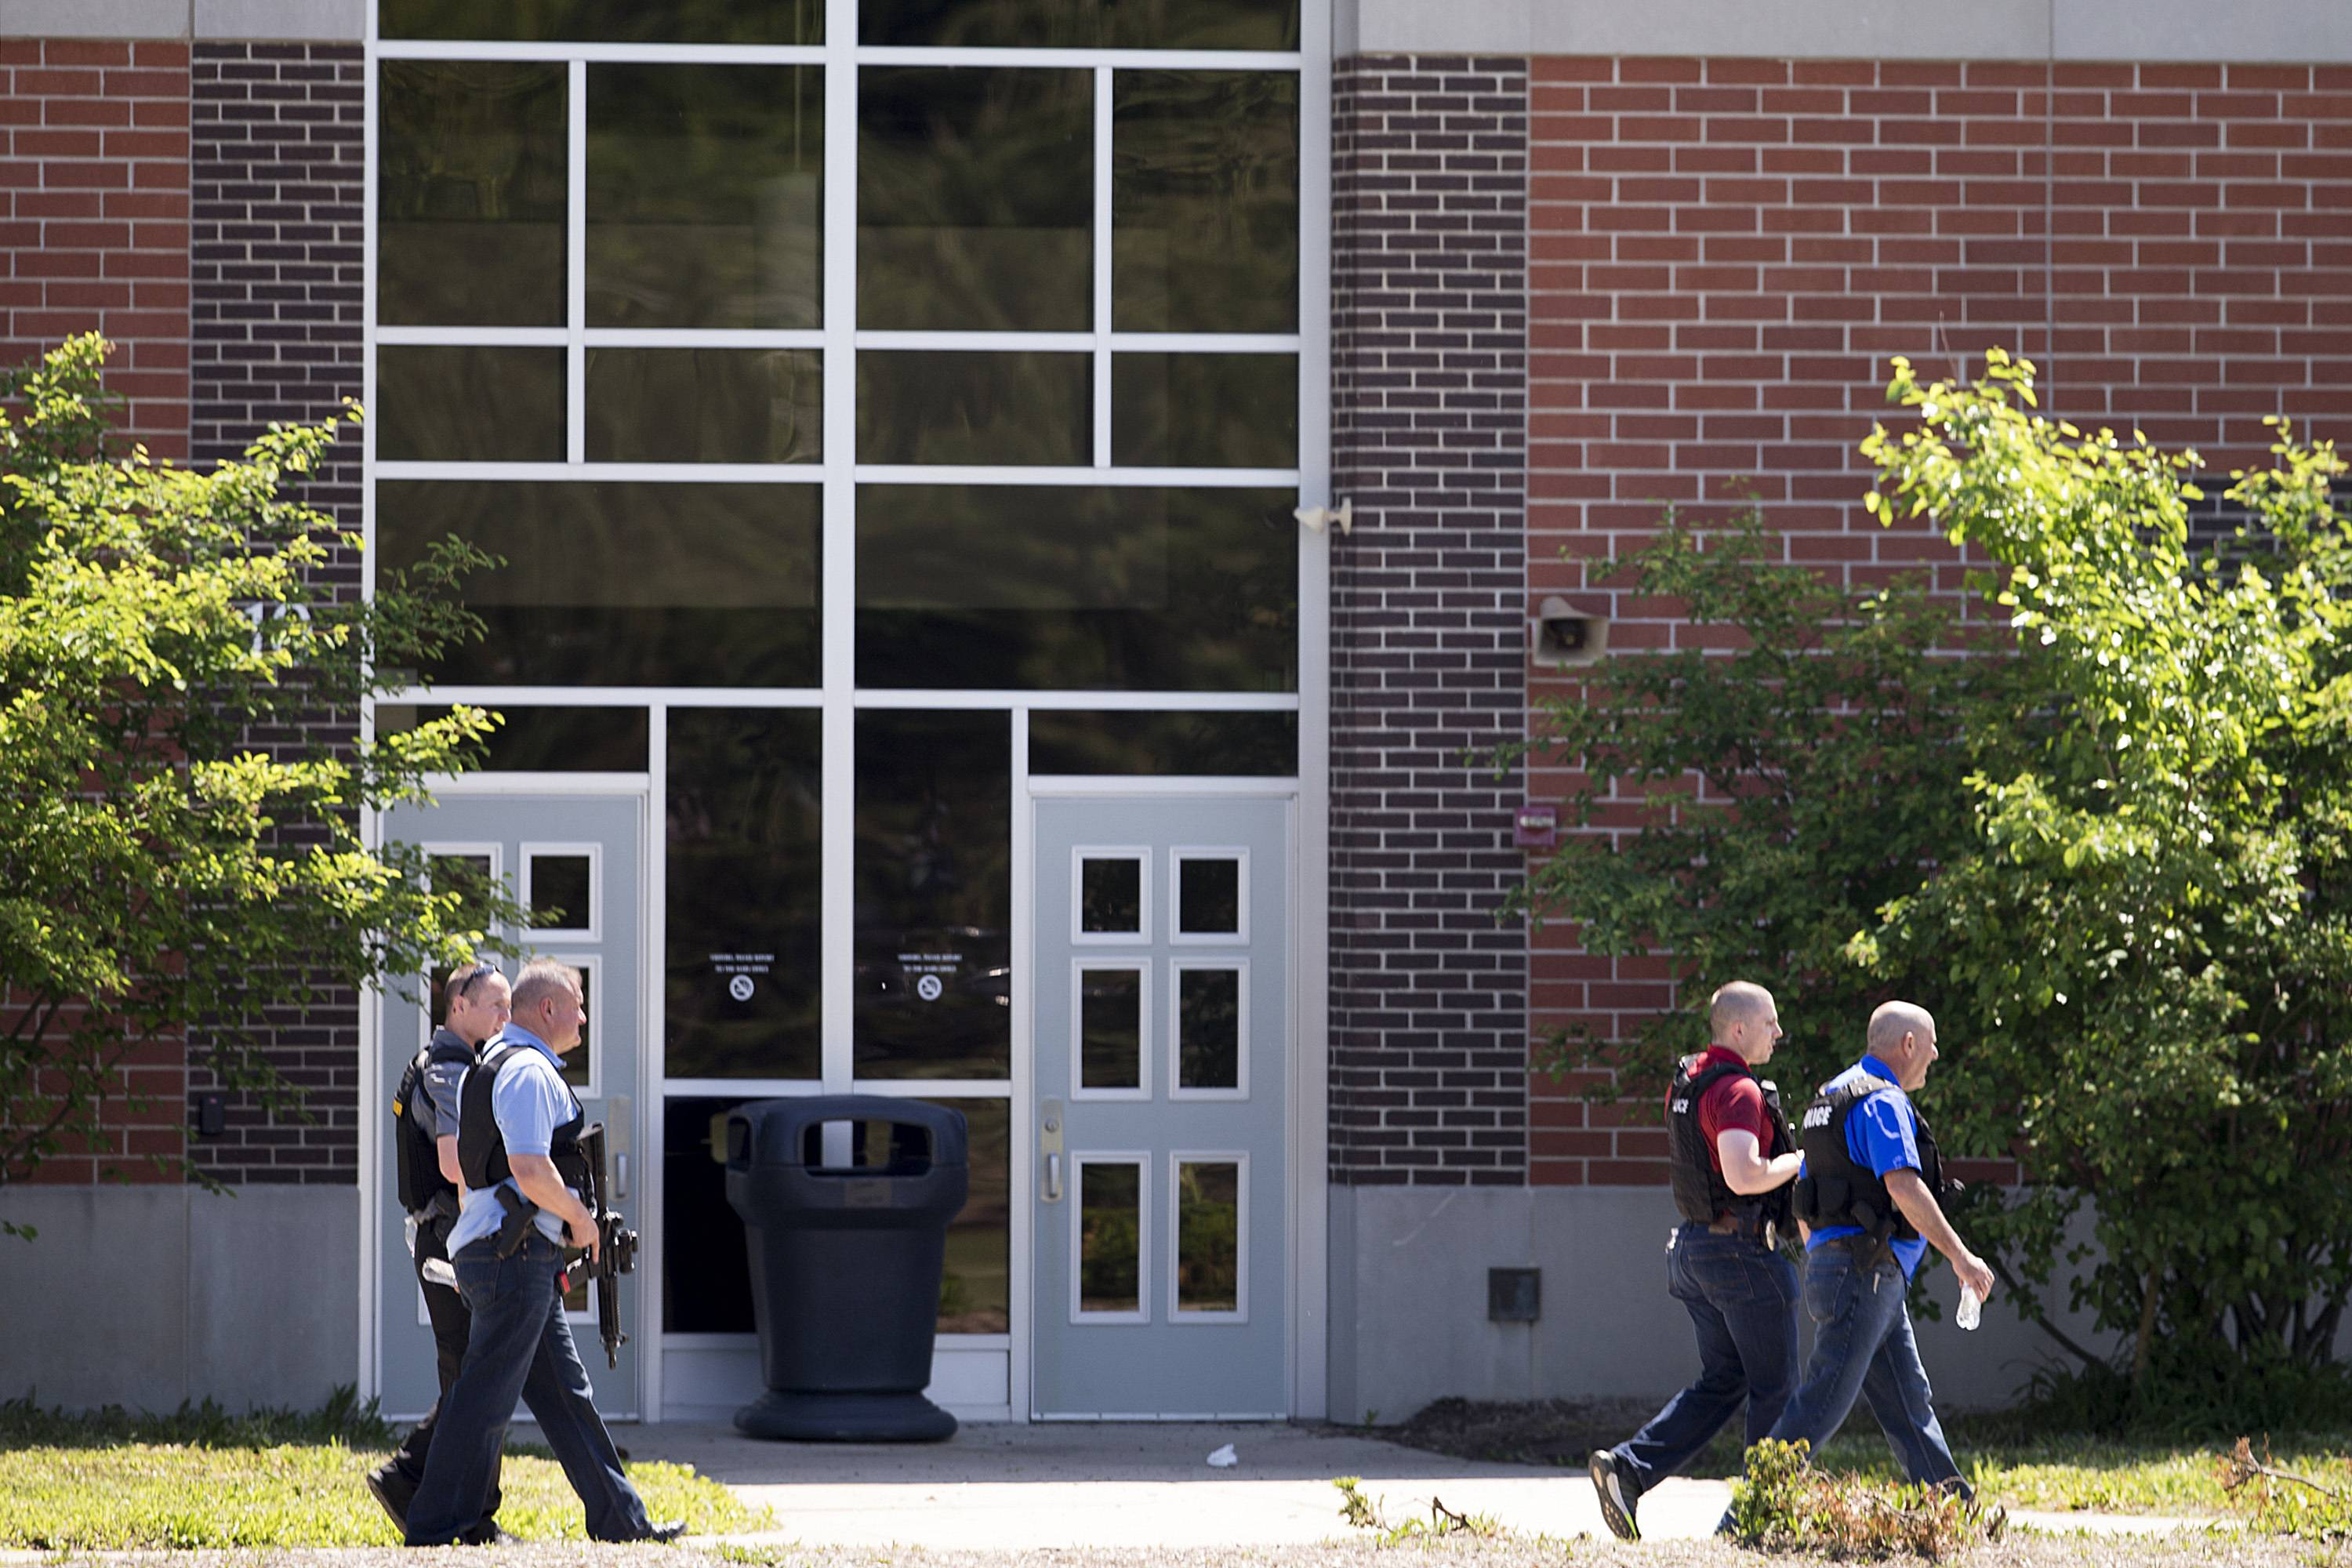 Law enforcement officers walk Friday outside Noblesville West Middle School in Noblesville, Indiana, after a shooting. A male student opened fire at the suburban Indianapolis school wounding another student and a teacher before being taken into custody, authorities said.